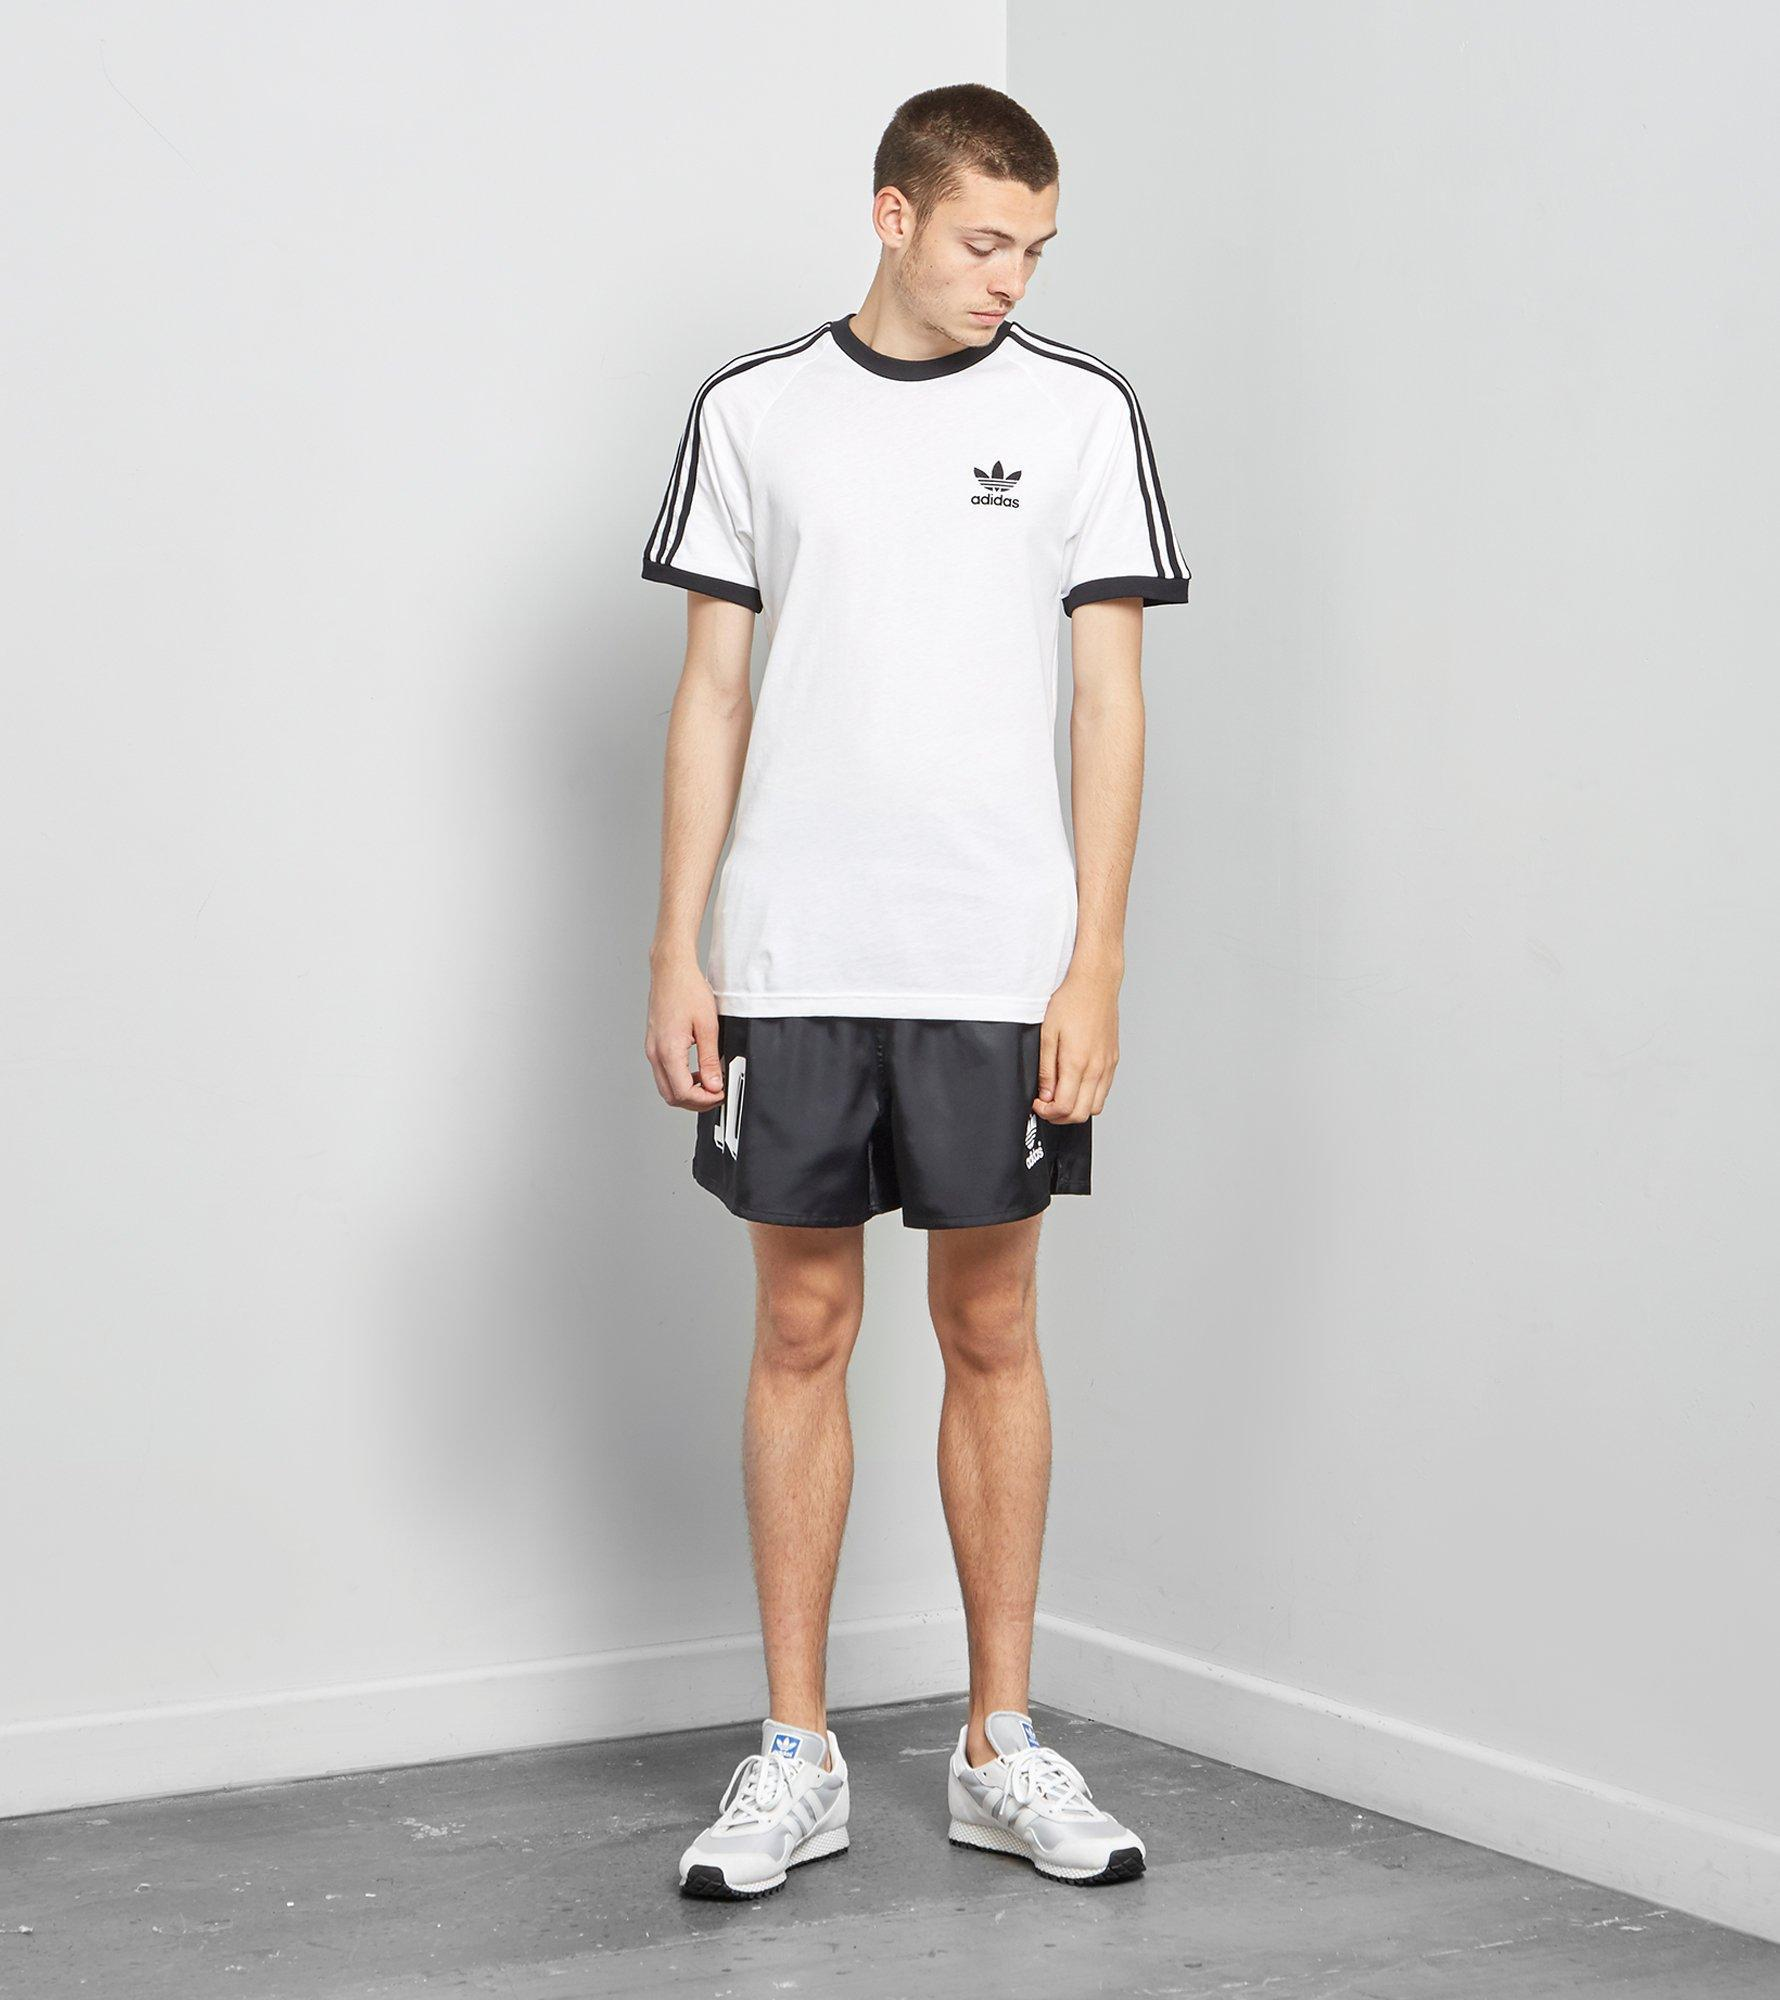 Adidas Shorts Black Lyst Originals Germany In For 1990 Men sQrhdt